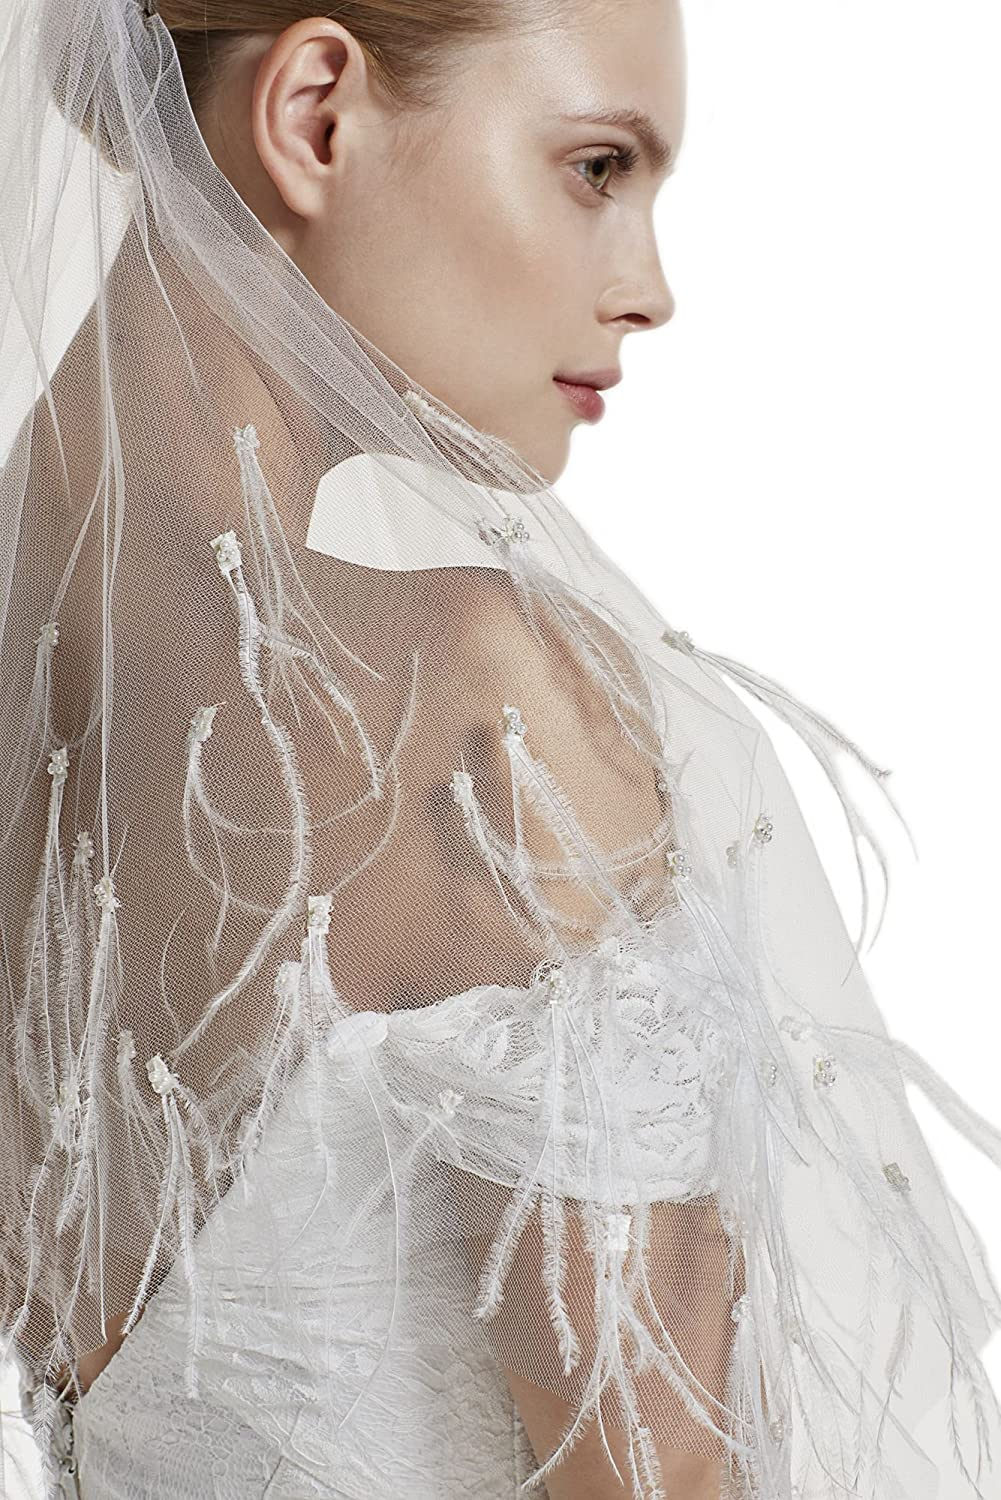 Gogh One Tier 36  Fingertip Wedding Bridal Veil Full With ostrich feather Pearls 38